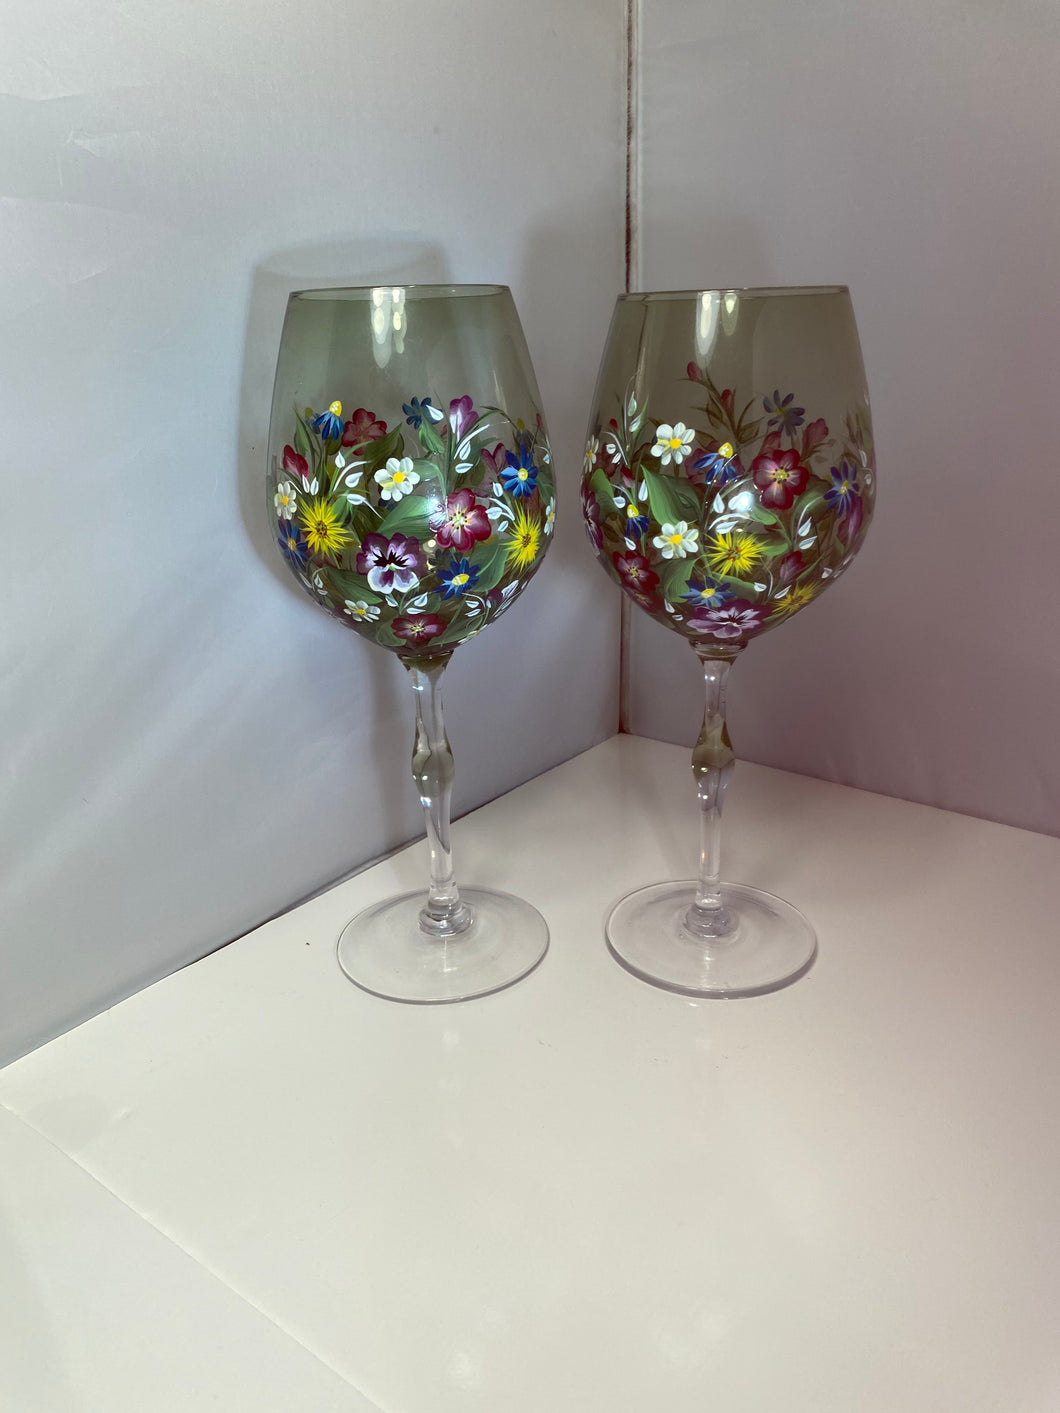 Hand Painted Floral Wine Glasses. Green Glass Wine Glasses with Colorful Flowers. Spring Garden Painted Wine Glasses.